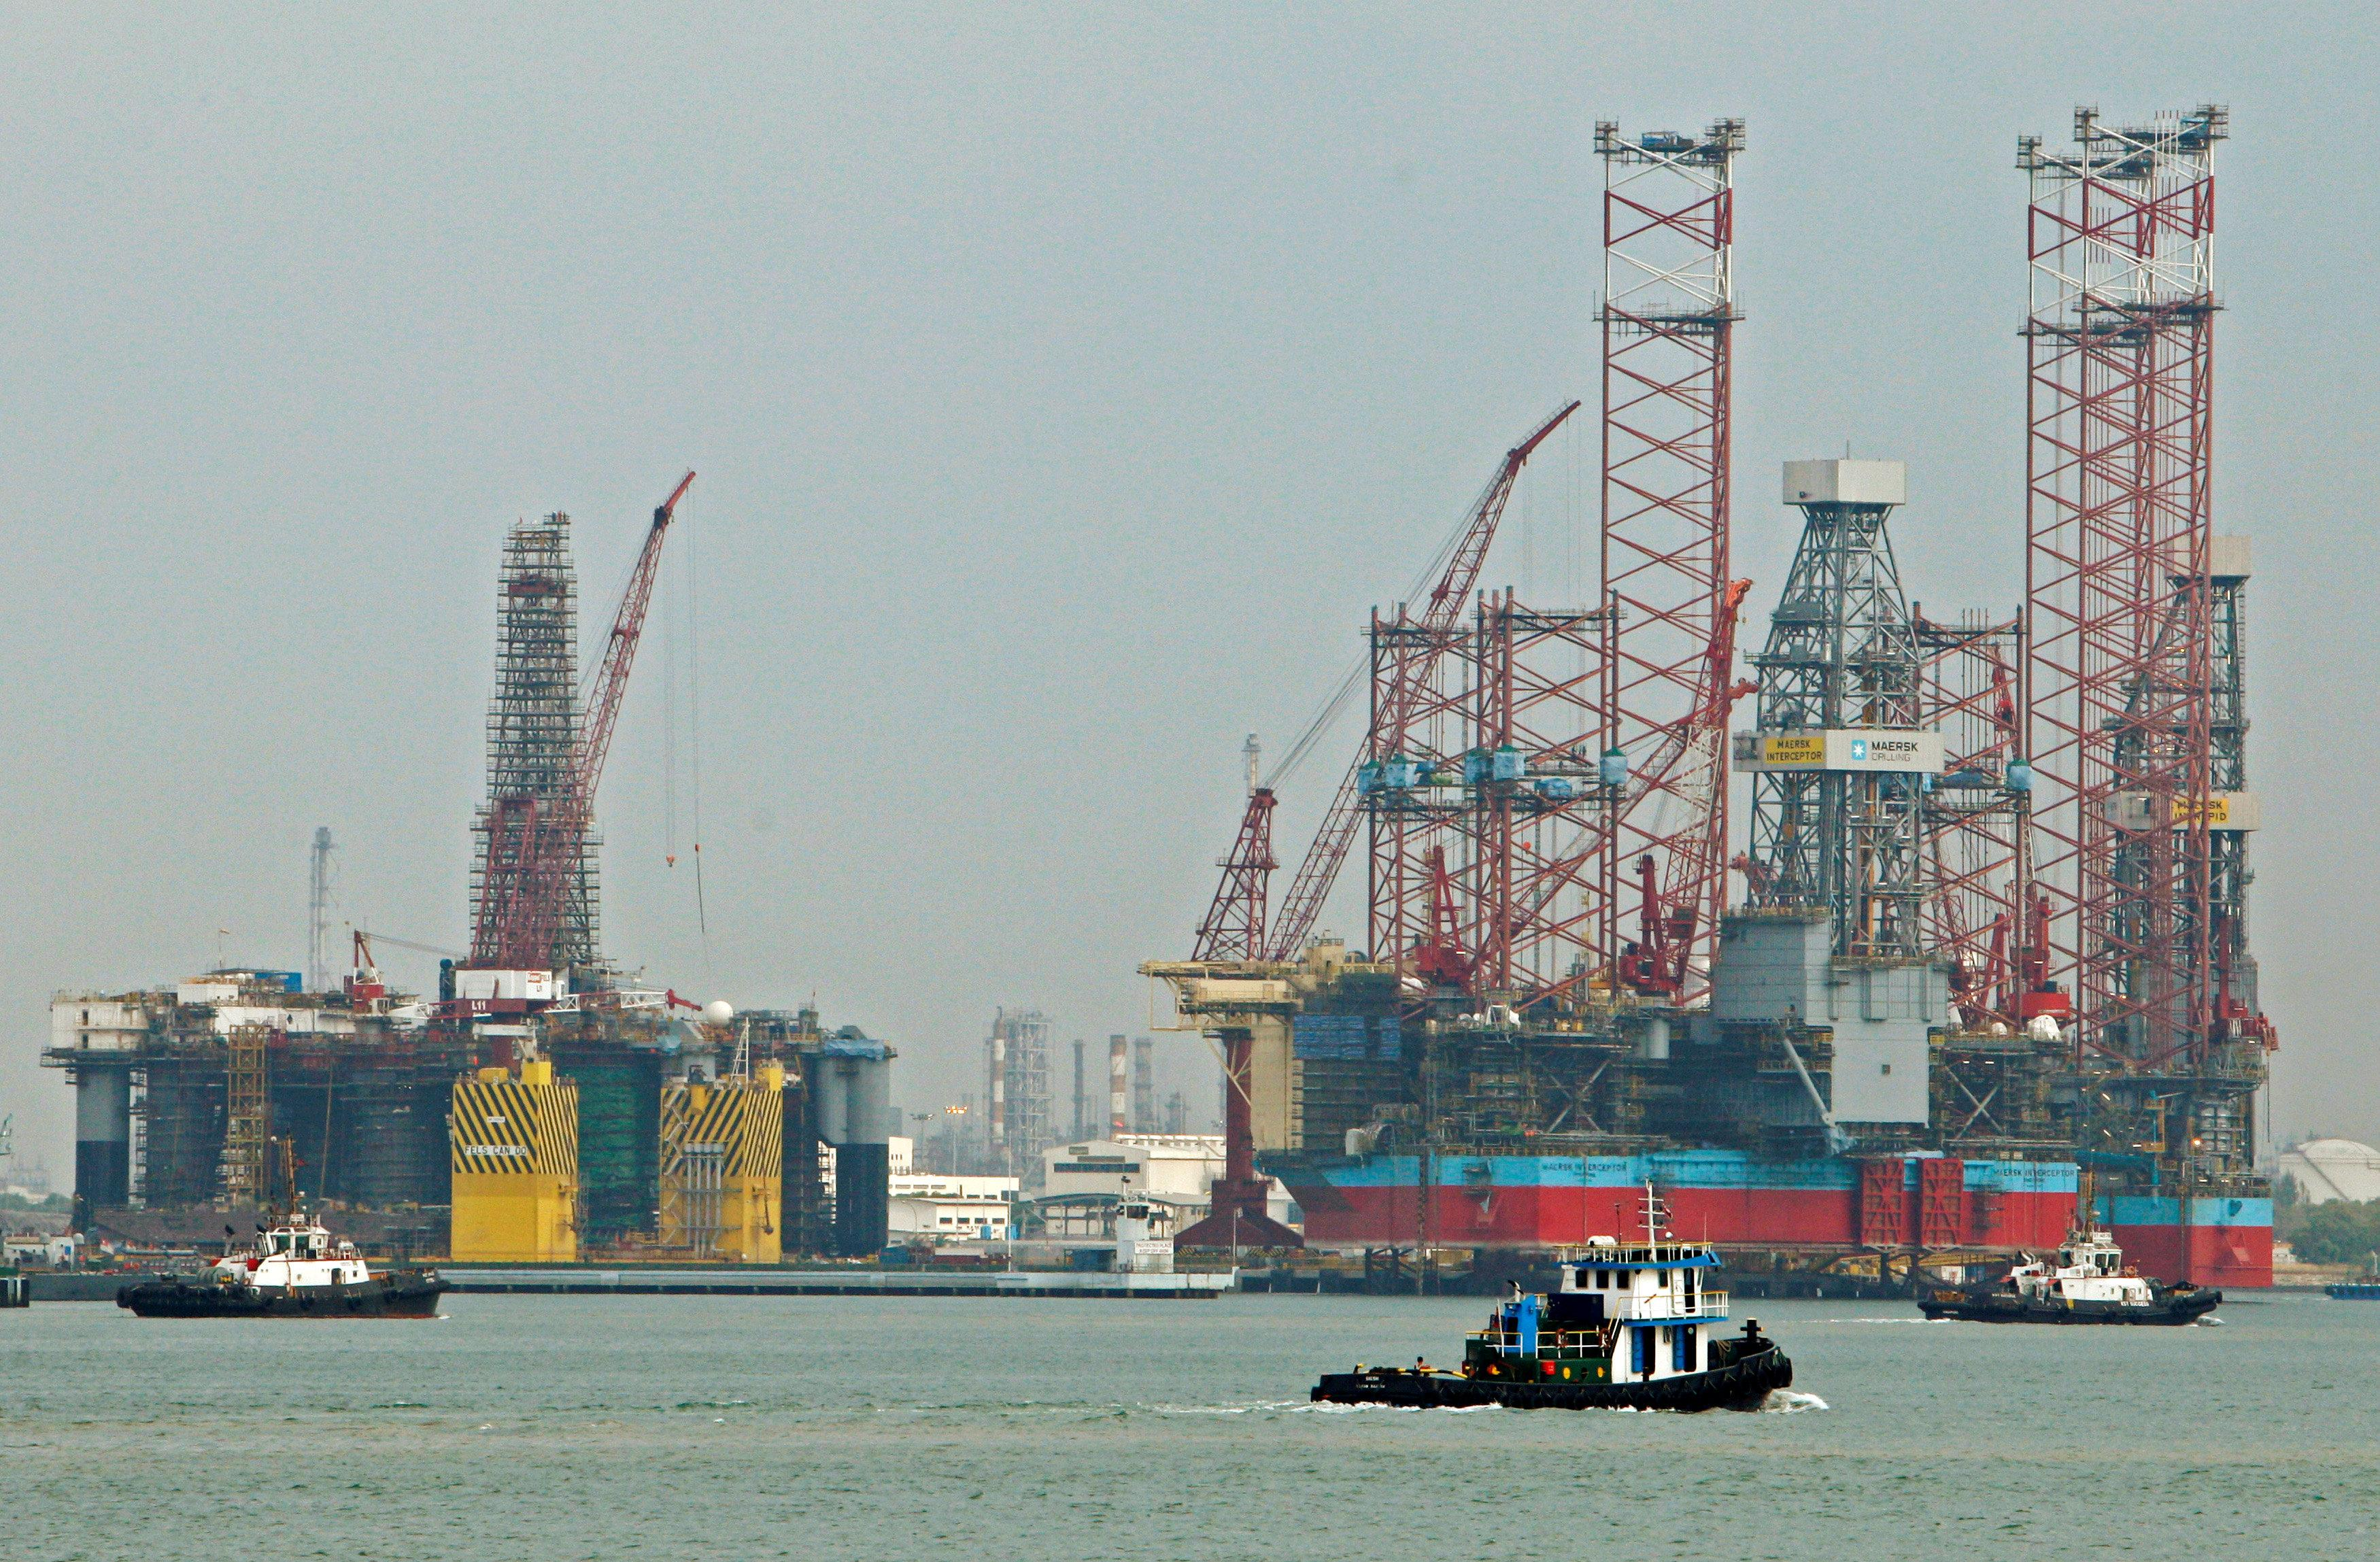 Singapore's offshore industry recovering, but no return to glory days